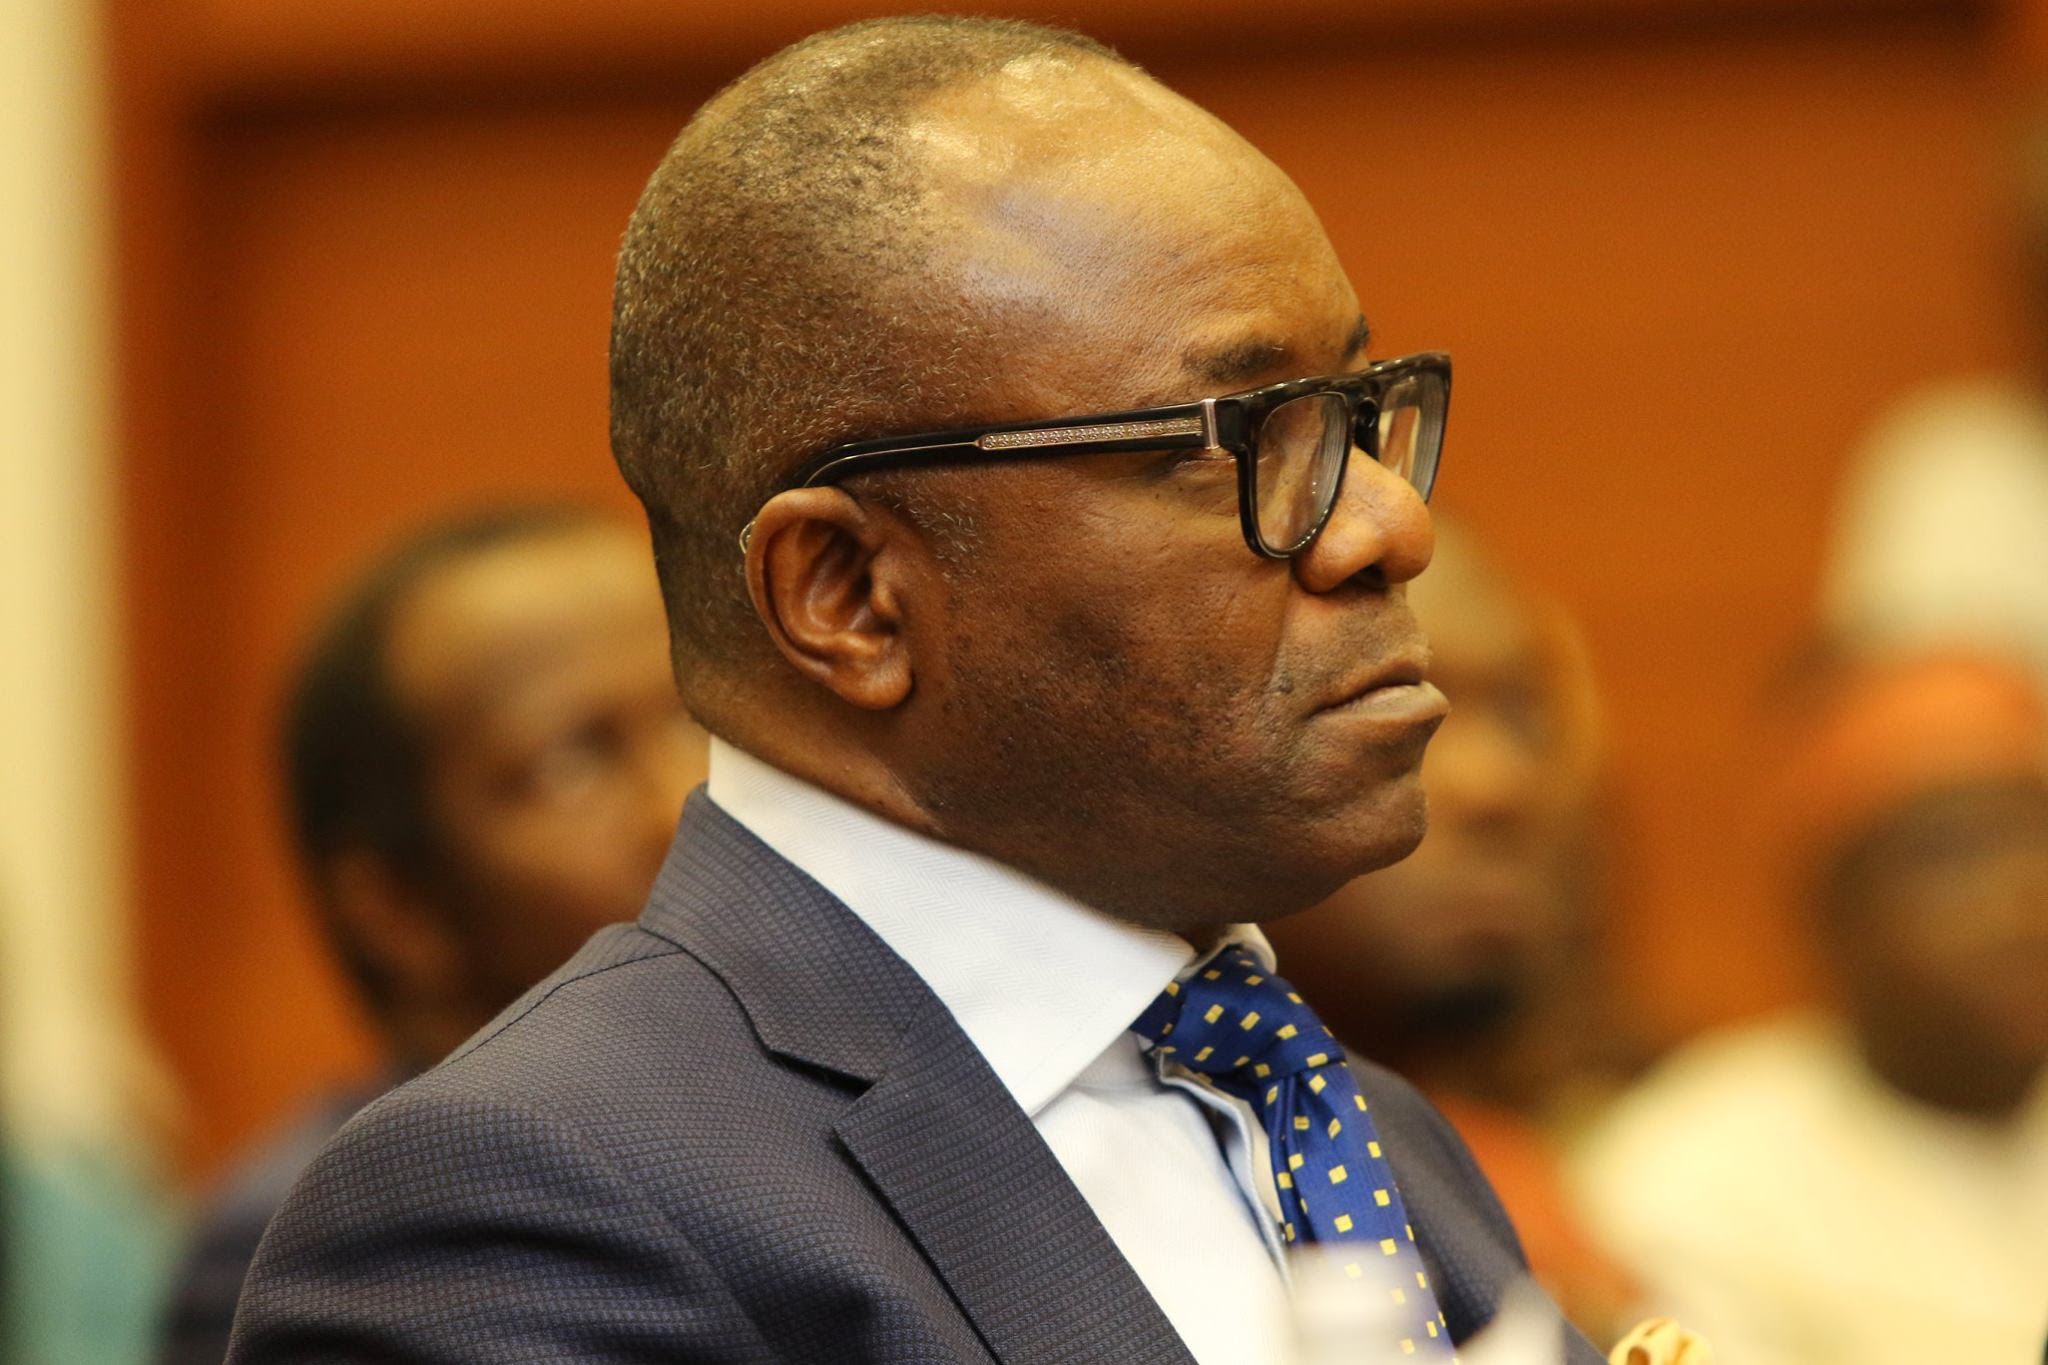 EXPOSED: How Ibe Kachikwu as Nigerian petroleum minister received multi-billion naira deposits, spent N7million on hotel, designer shoes, clothes in 2 days